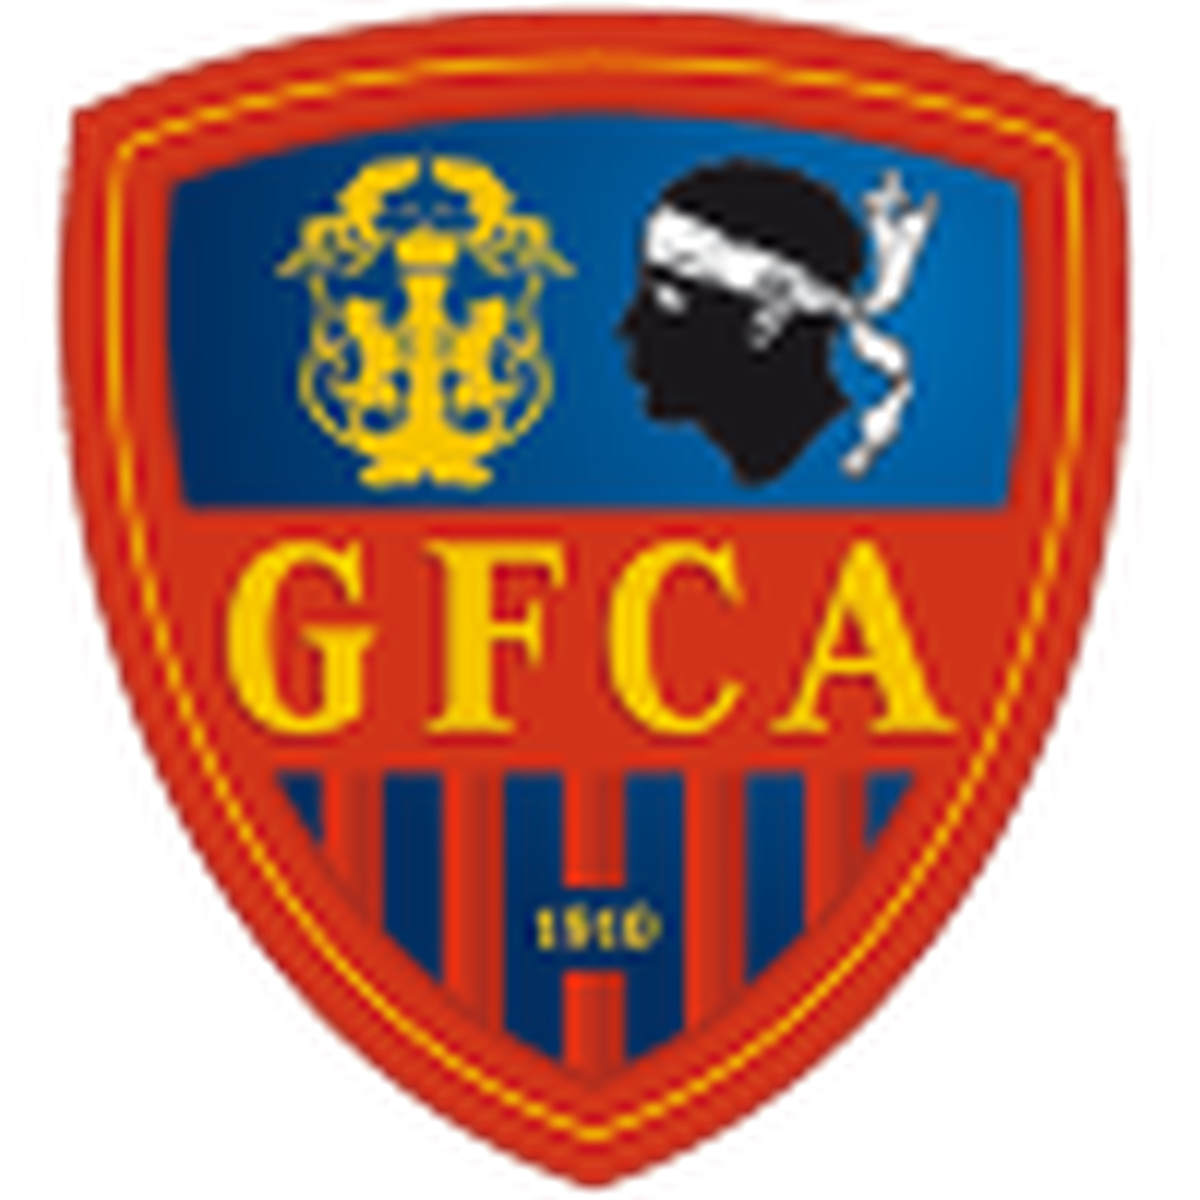 GAZELEC FOOTBALL CLUB AJACCIO